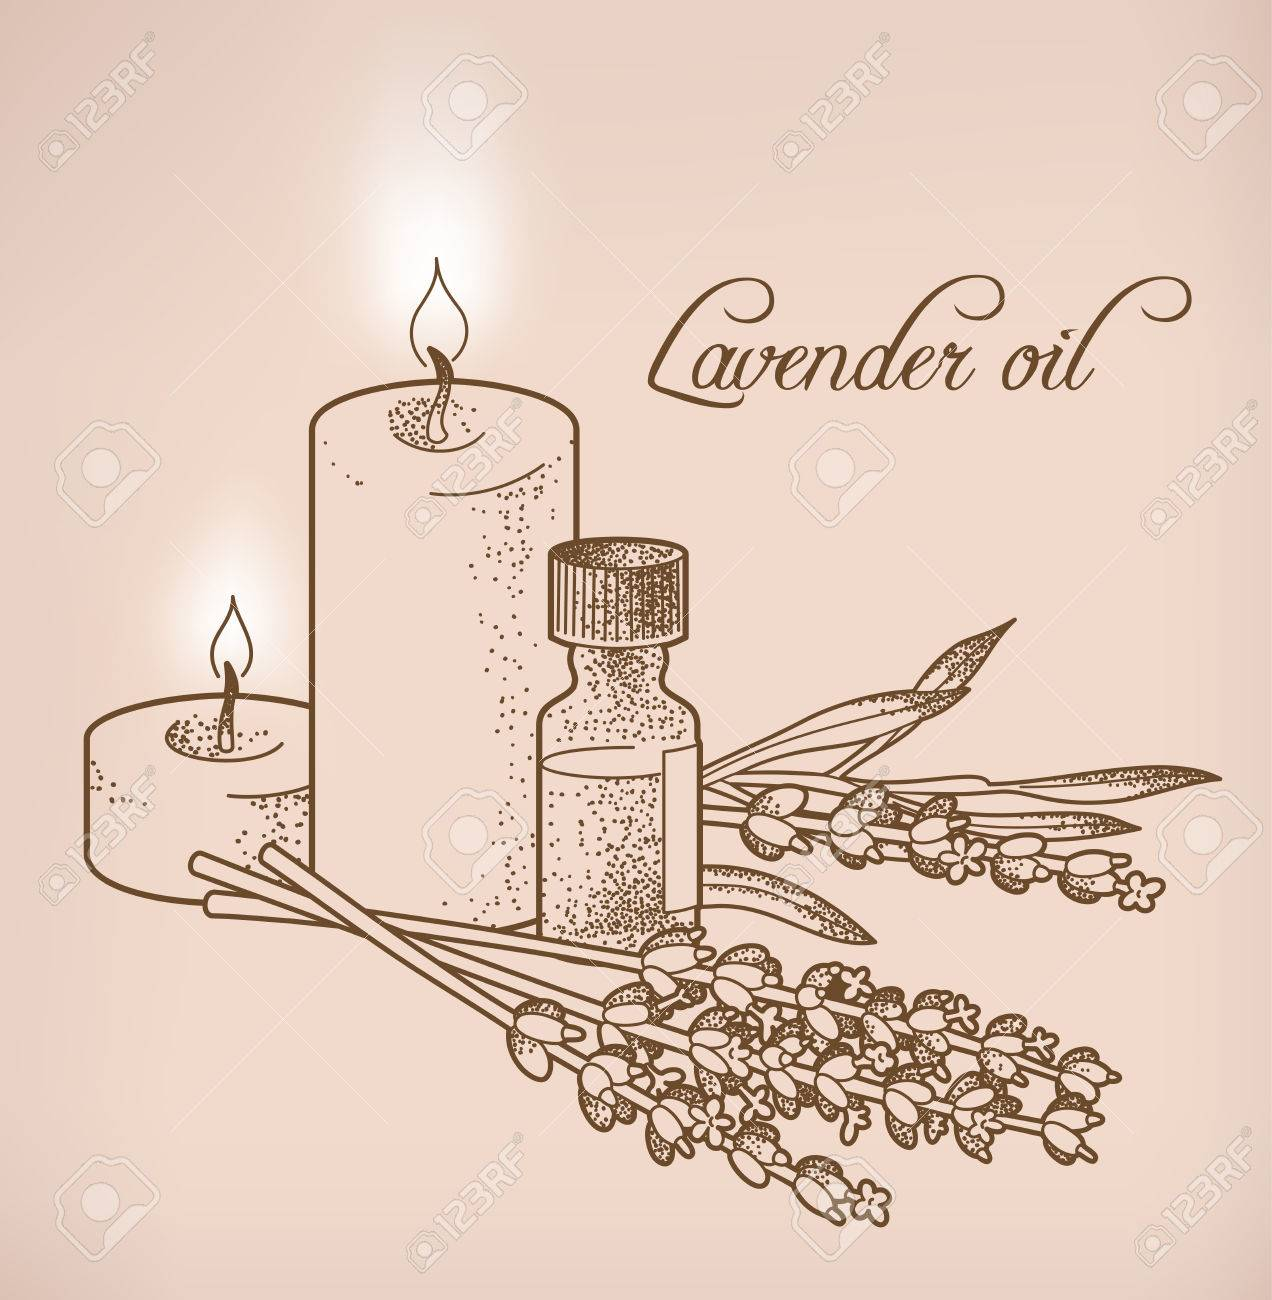 Illustration of lavender essential oil and candles - 38642640